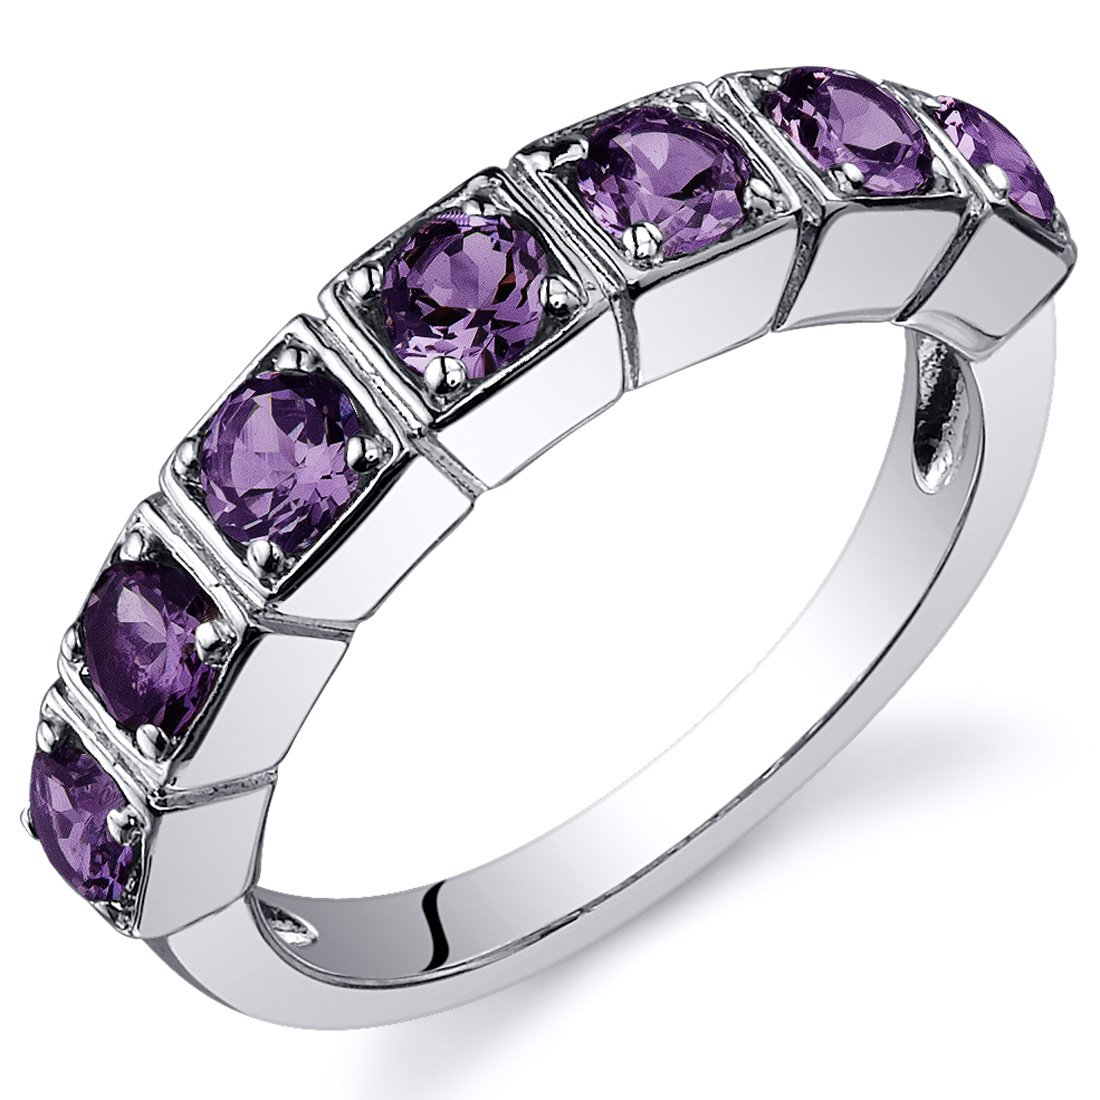 Simulated Alexandrite Band Ring Sterling Silver 1.75 Carats Sizes 5 to 9